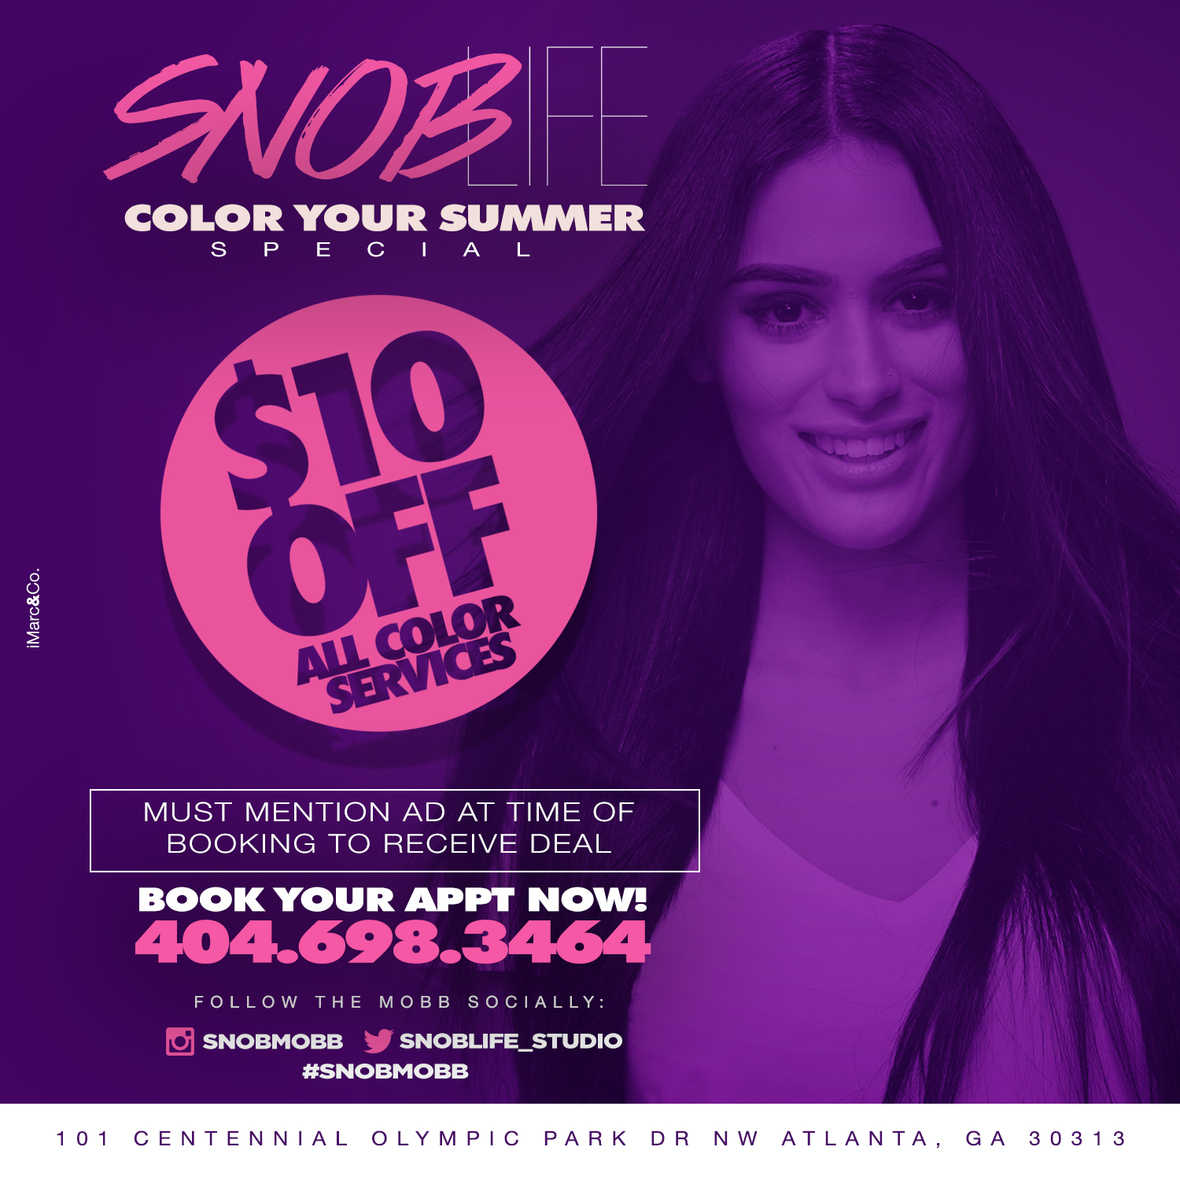 SNOB COLOR YOUR SUMMER 2